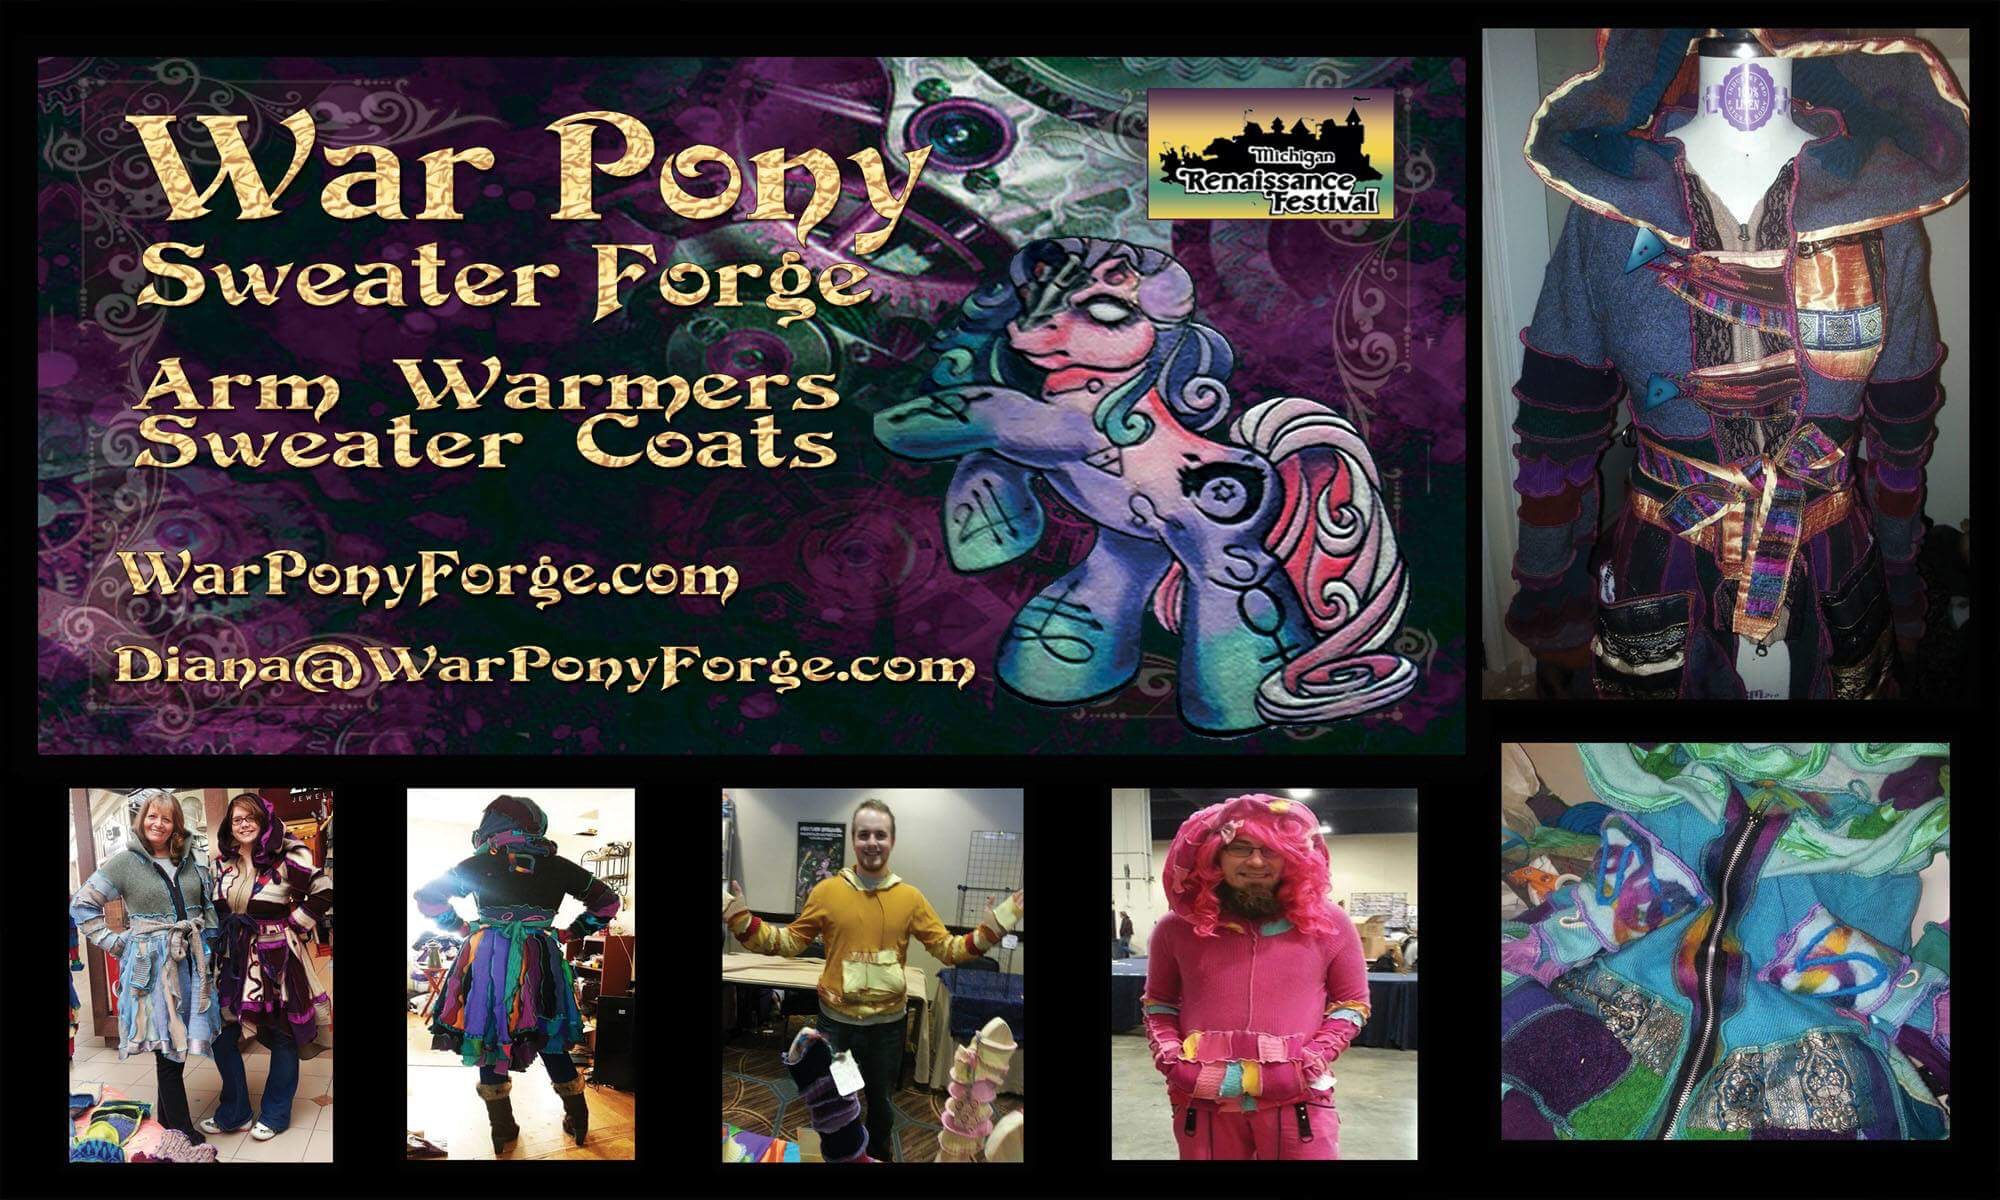 Warpony Forge